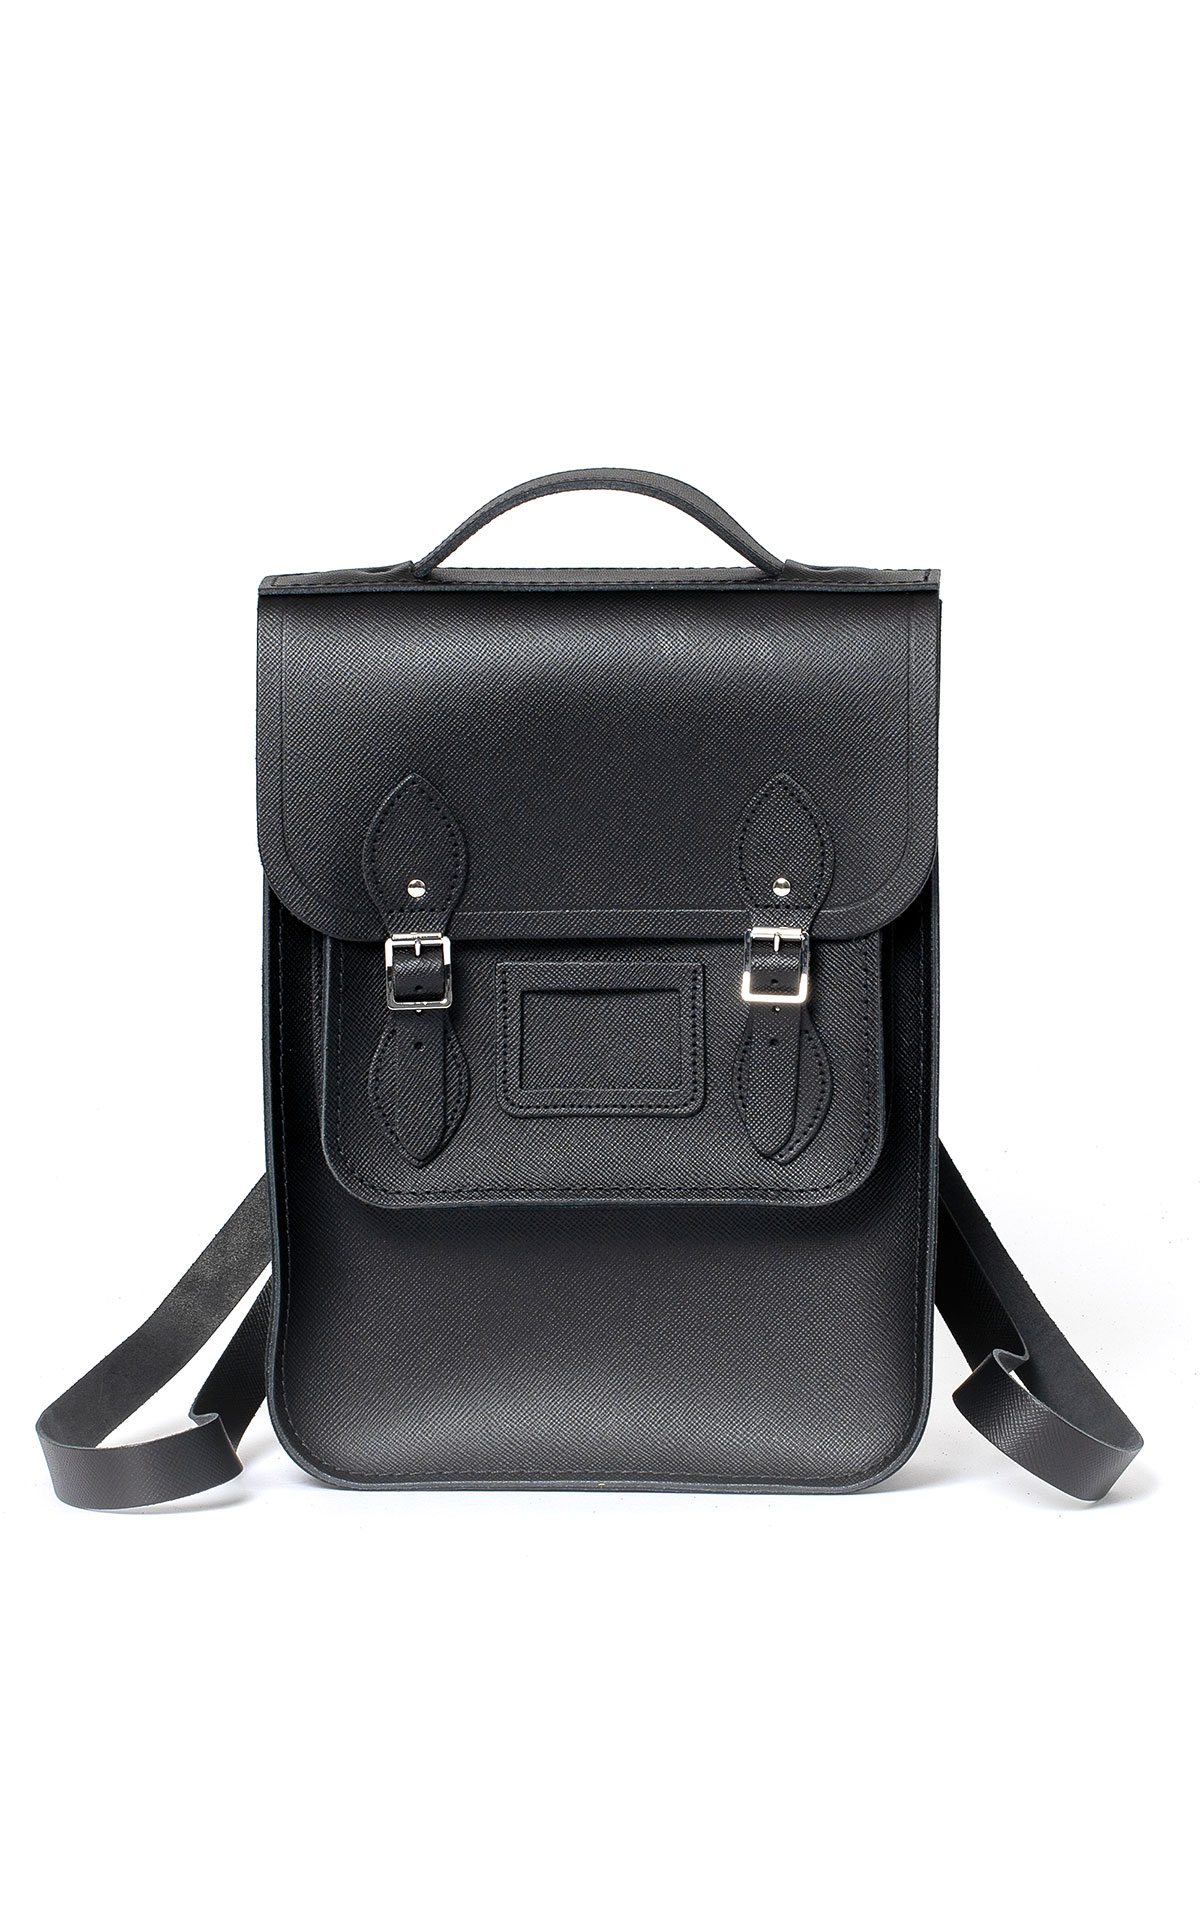 The Cambridge Satchel Company Portrait backpack black saffiano from Bicester Village